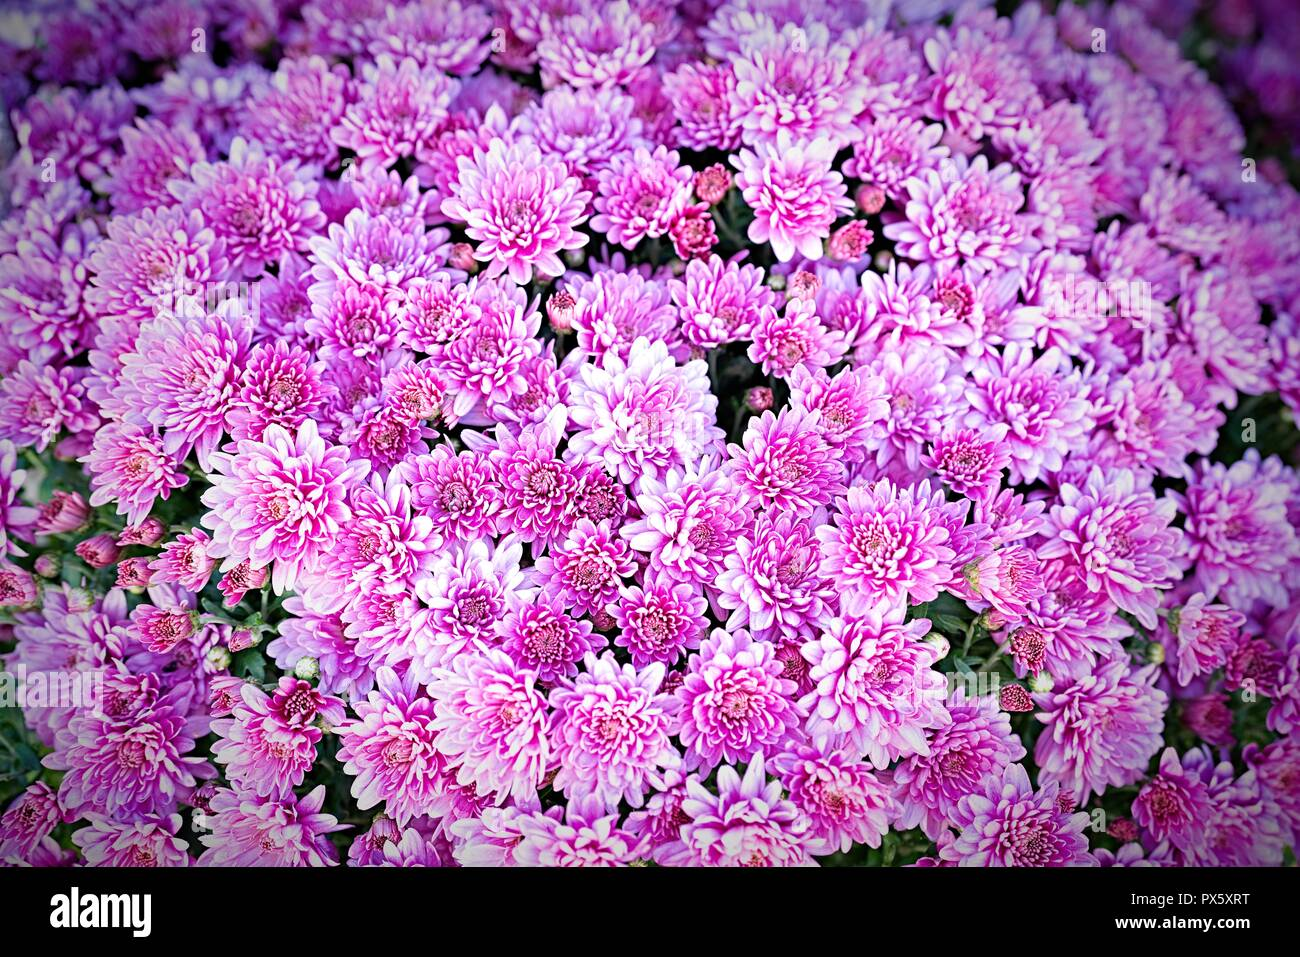 Flowers Wall Background Wedding Decoration Floral Gardening Background With Variety Of Colorful Garden Flowers Stock Photo Alamy